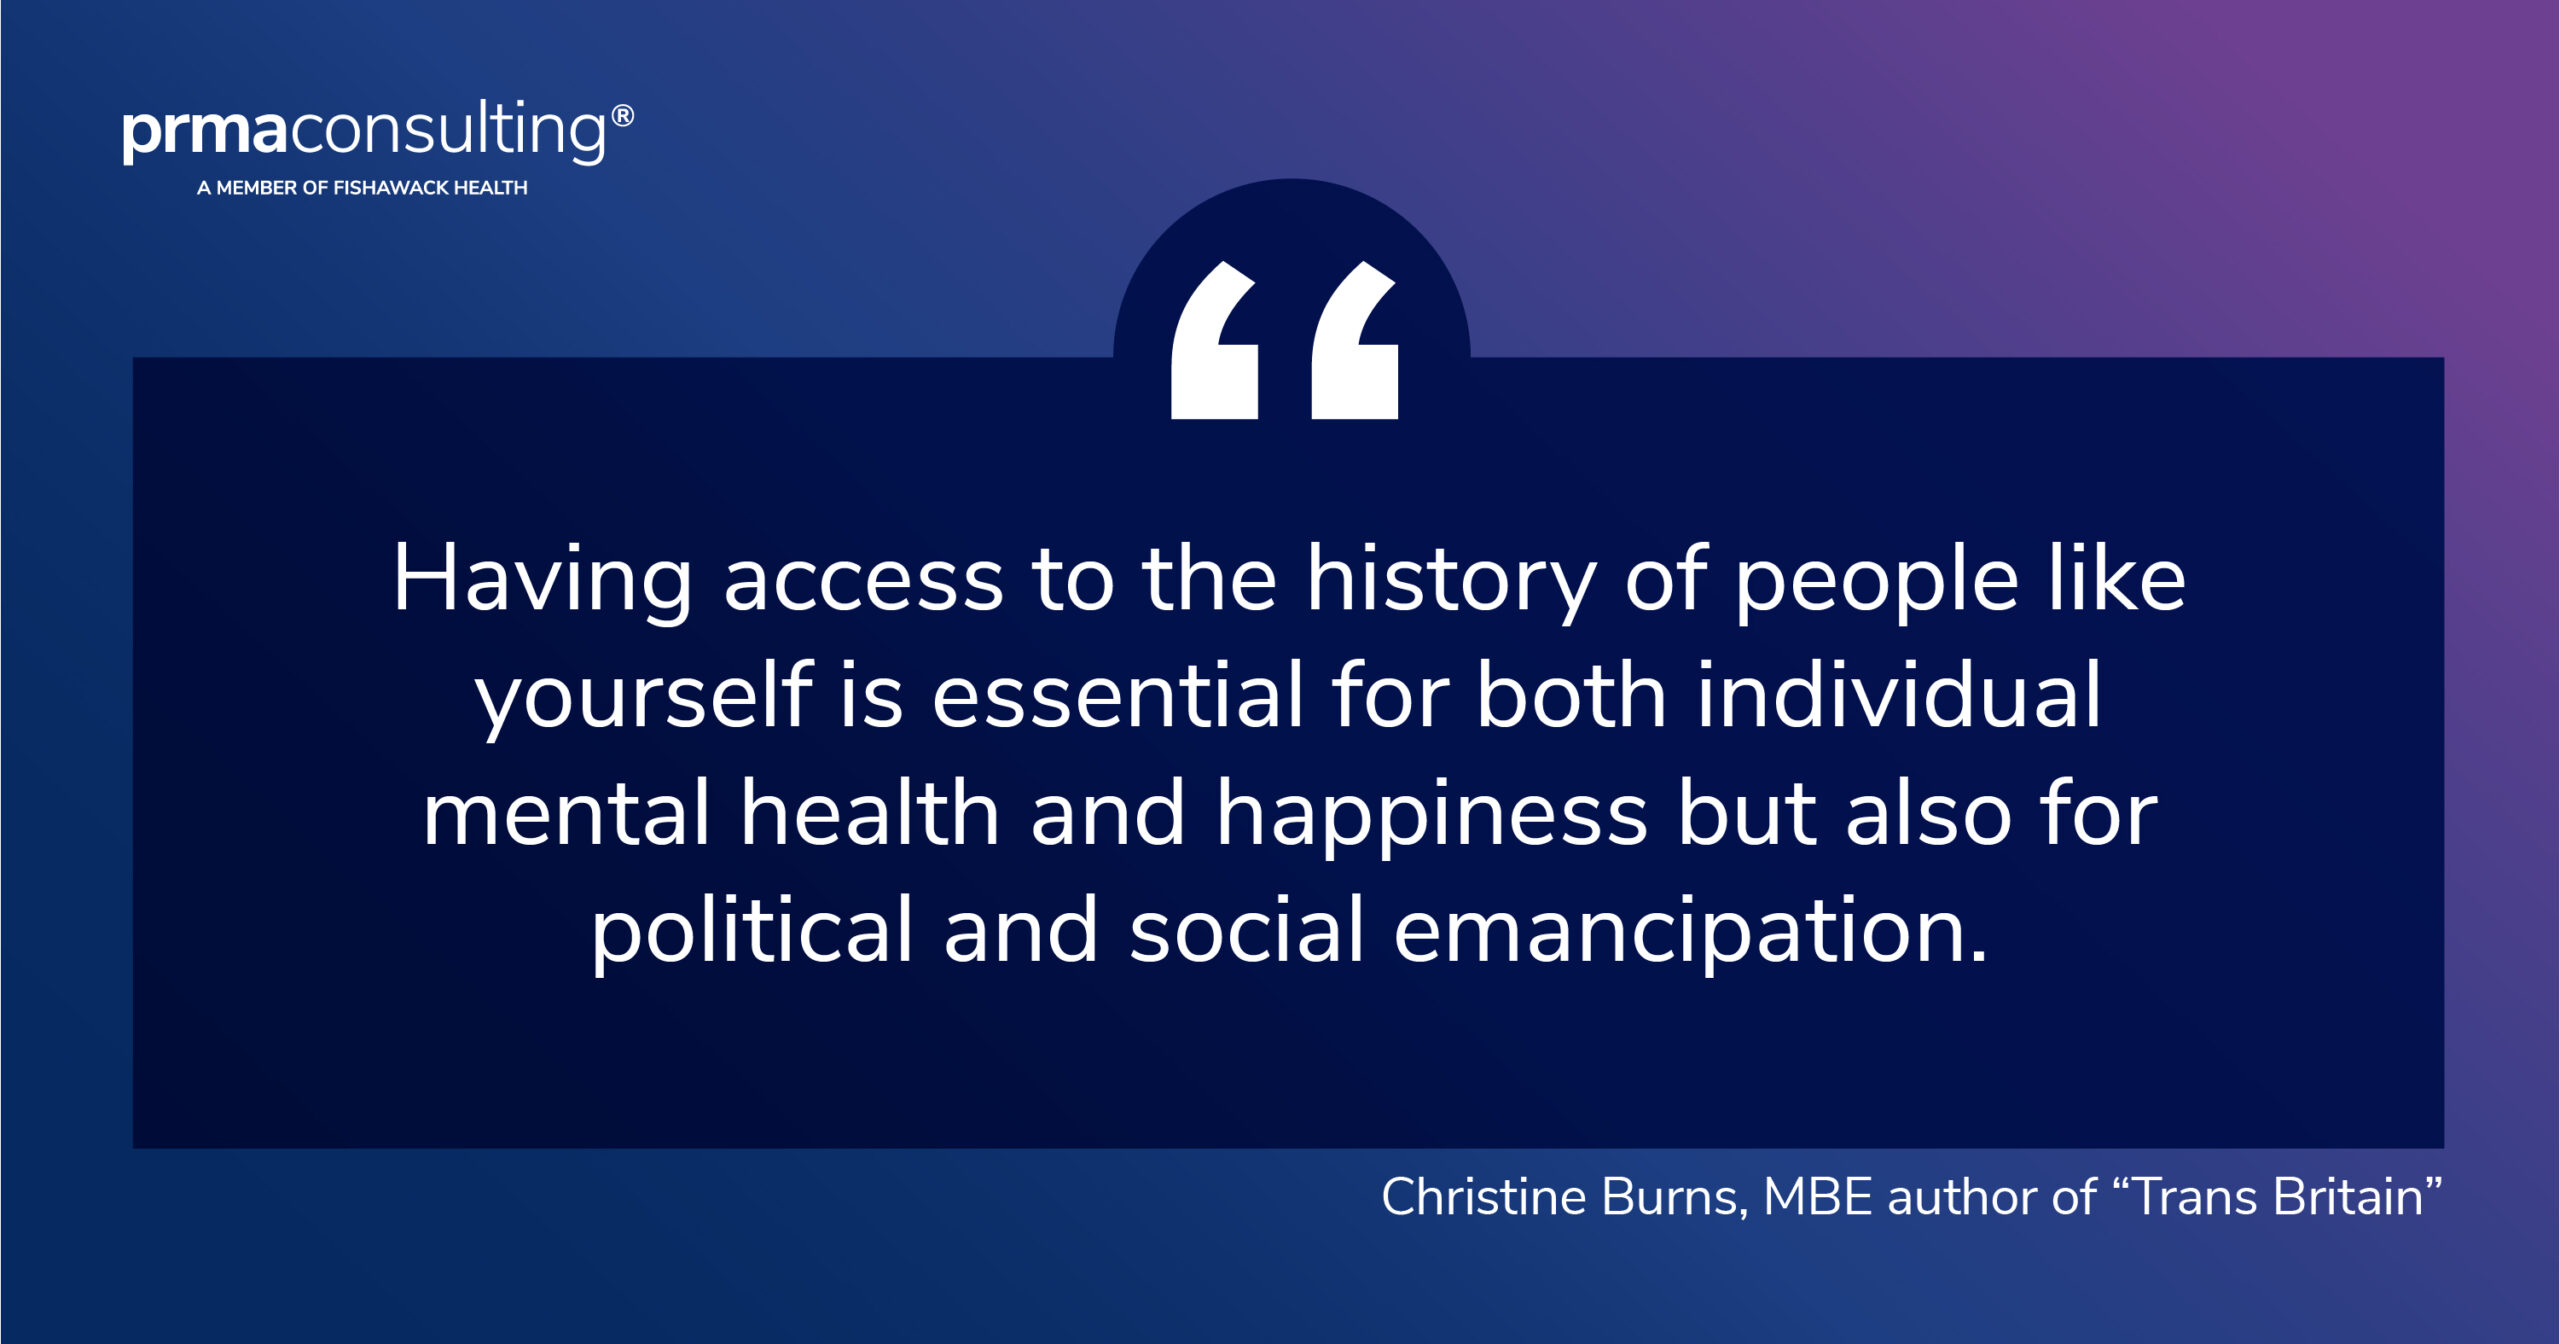 """""""Having access to the history of people like yourself is essential for both individual mental health and happiness but also for political and social emancipation."""" Christine Burns, MBE author of """"Trans Britain""""."""